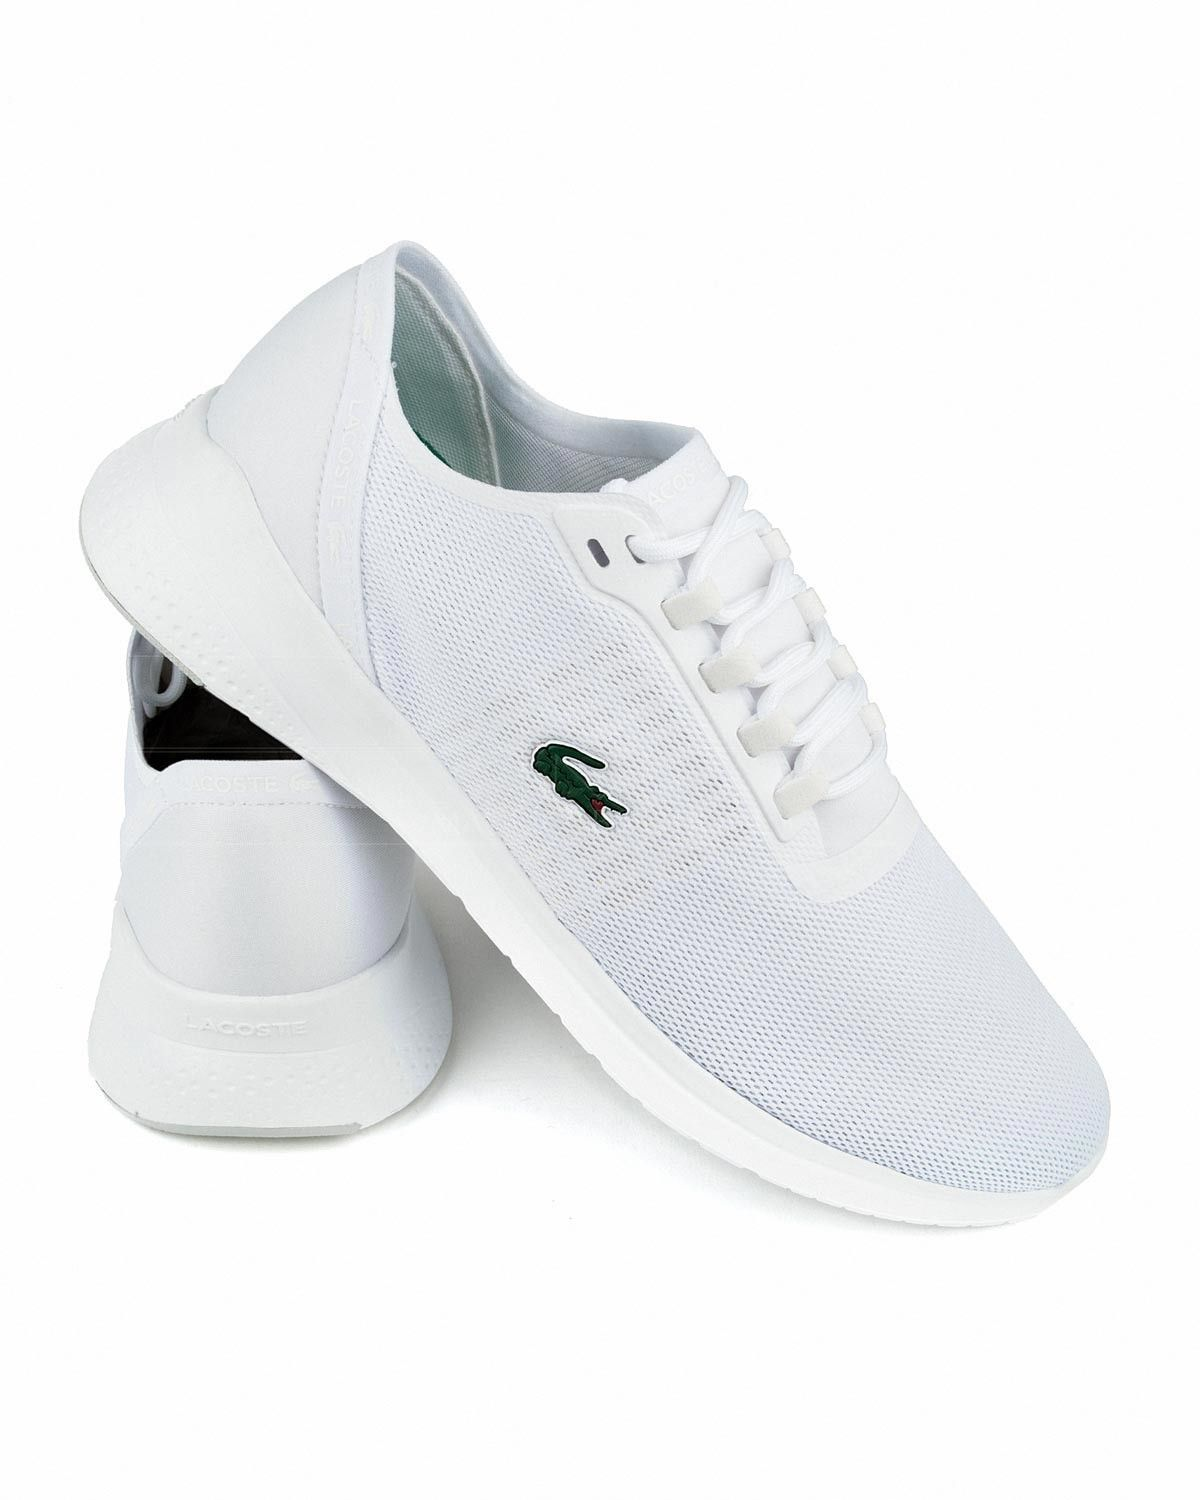 the best attitude a5105 2c368 Zapatillas LACOSTE ® Lt Fit ✶ Blanco   ENVIO GRATIS